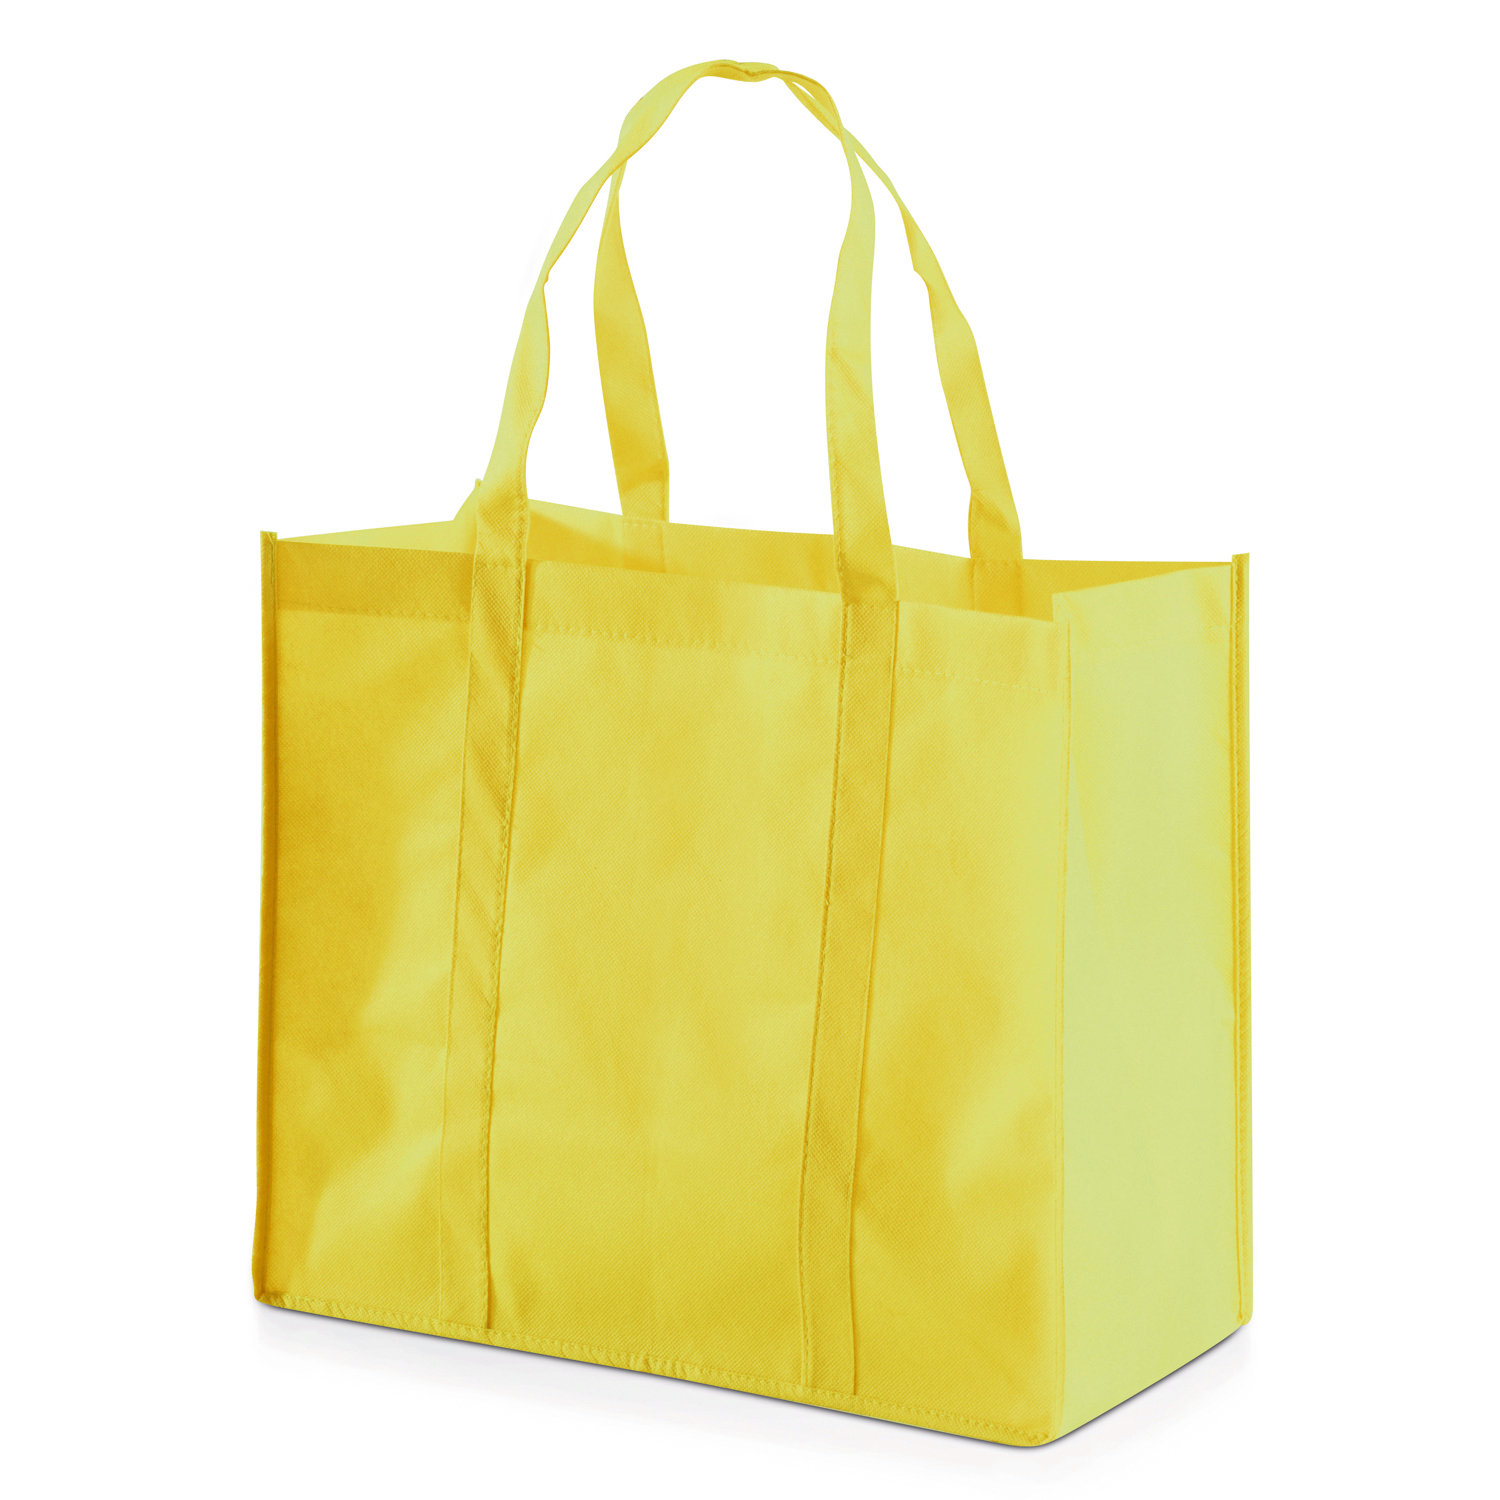 Shopping Bag 013 (Non-woven Shopping bag) - hmi17013-12 (Yellow)